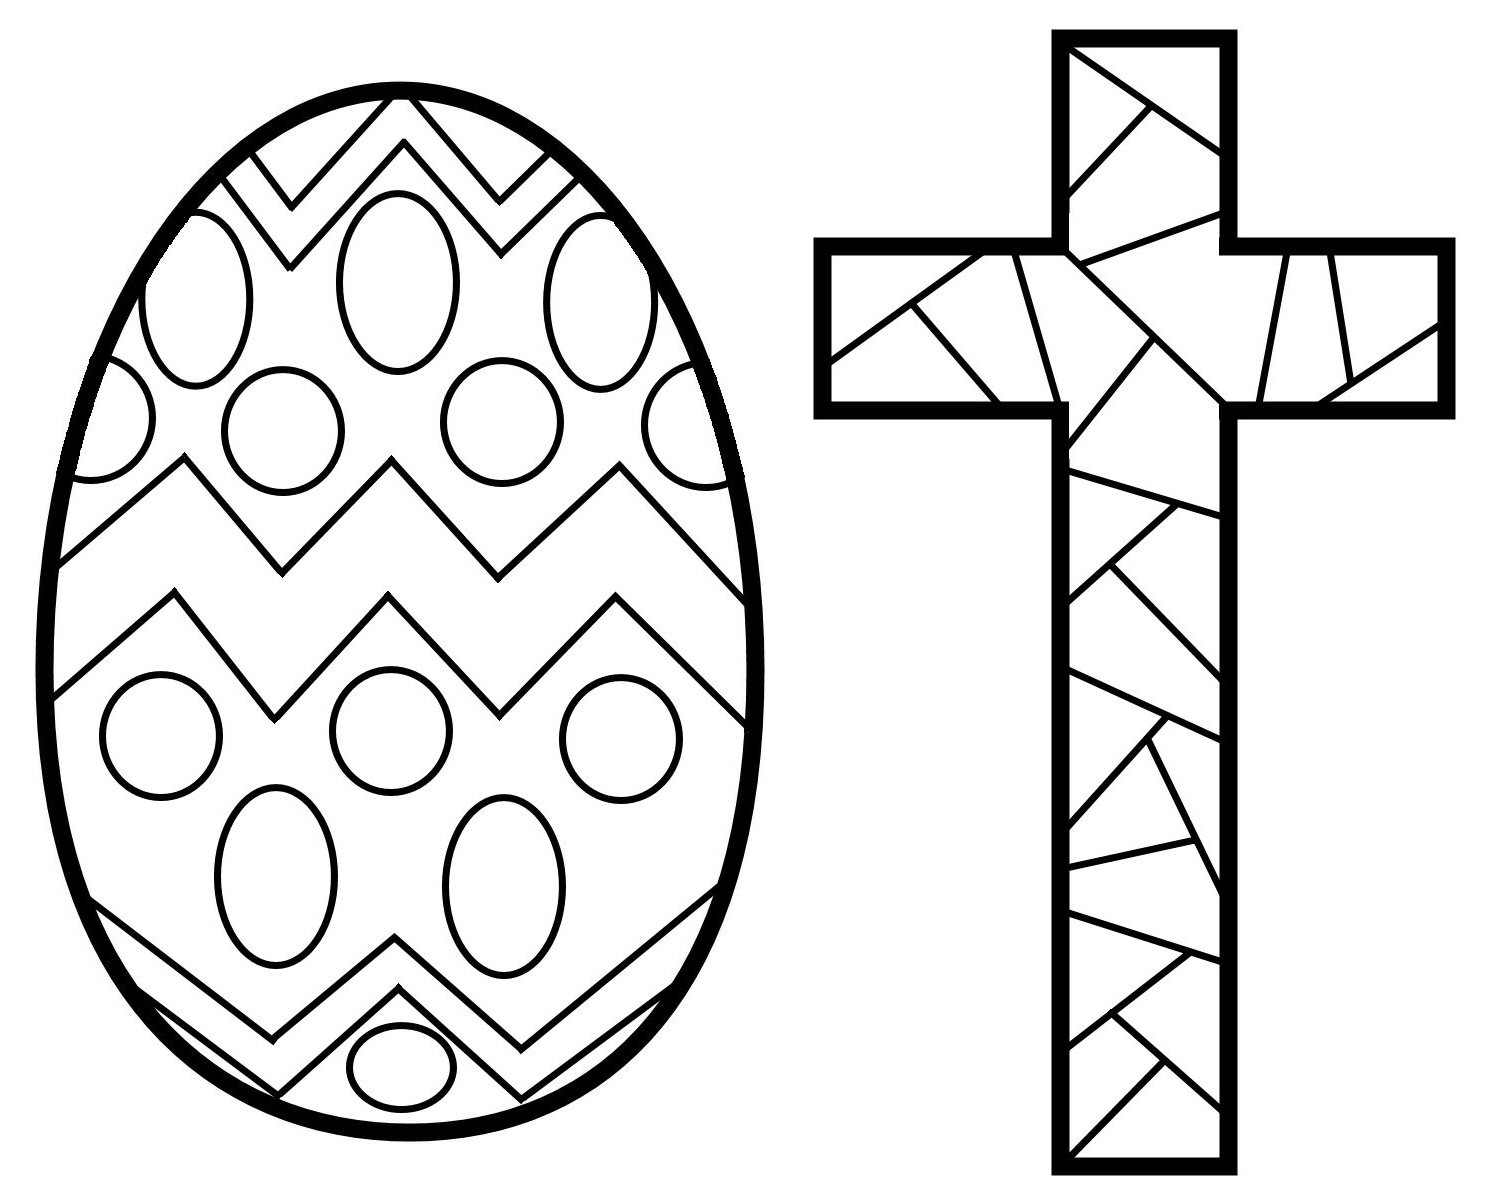 1500x1200 Easter Cross Coloring Pages Printable Hd Images